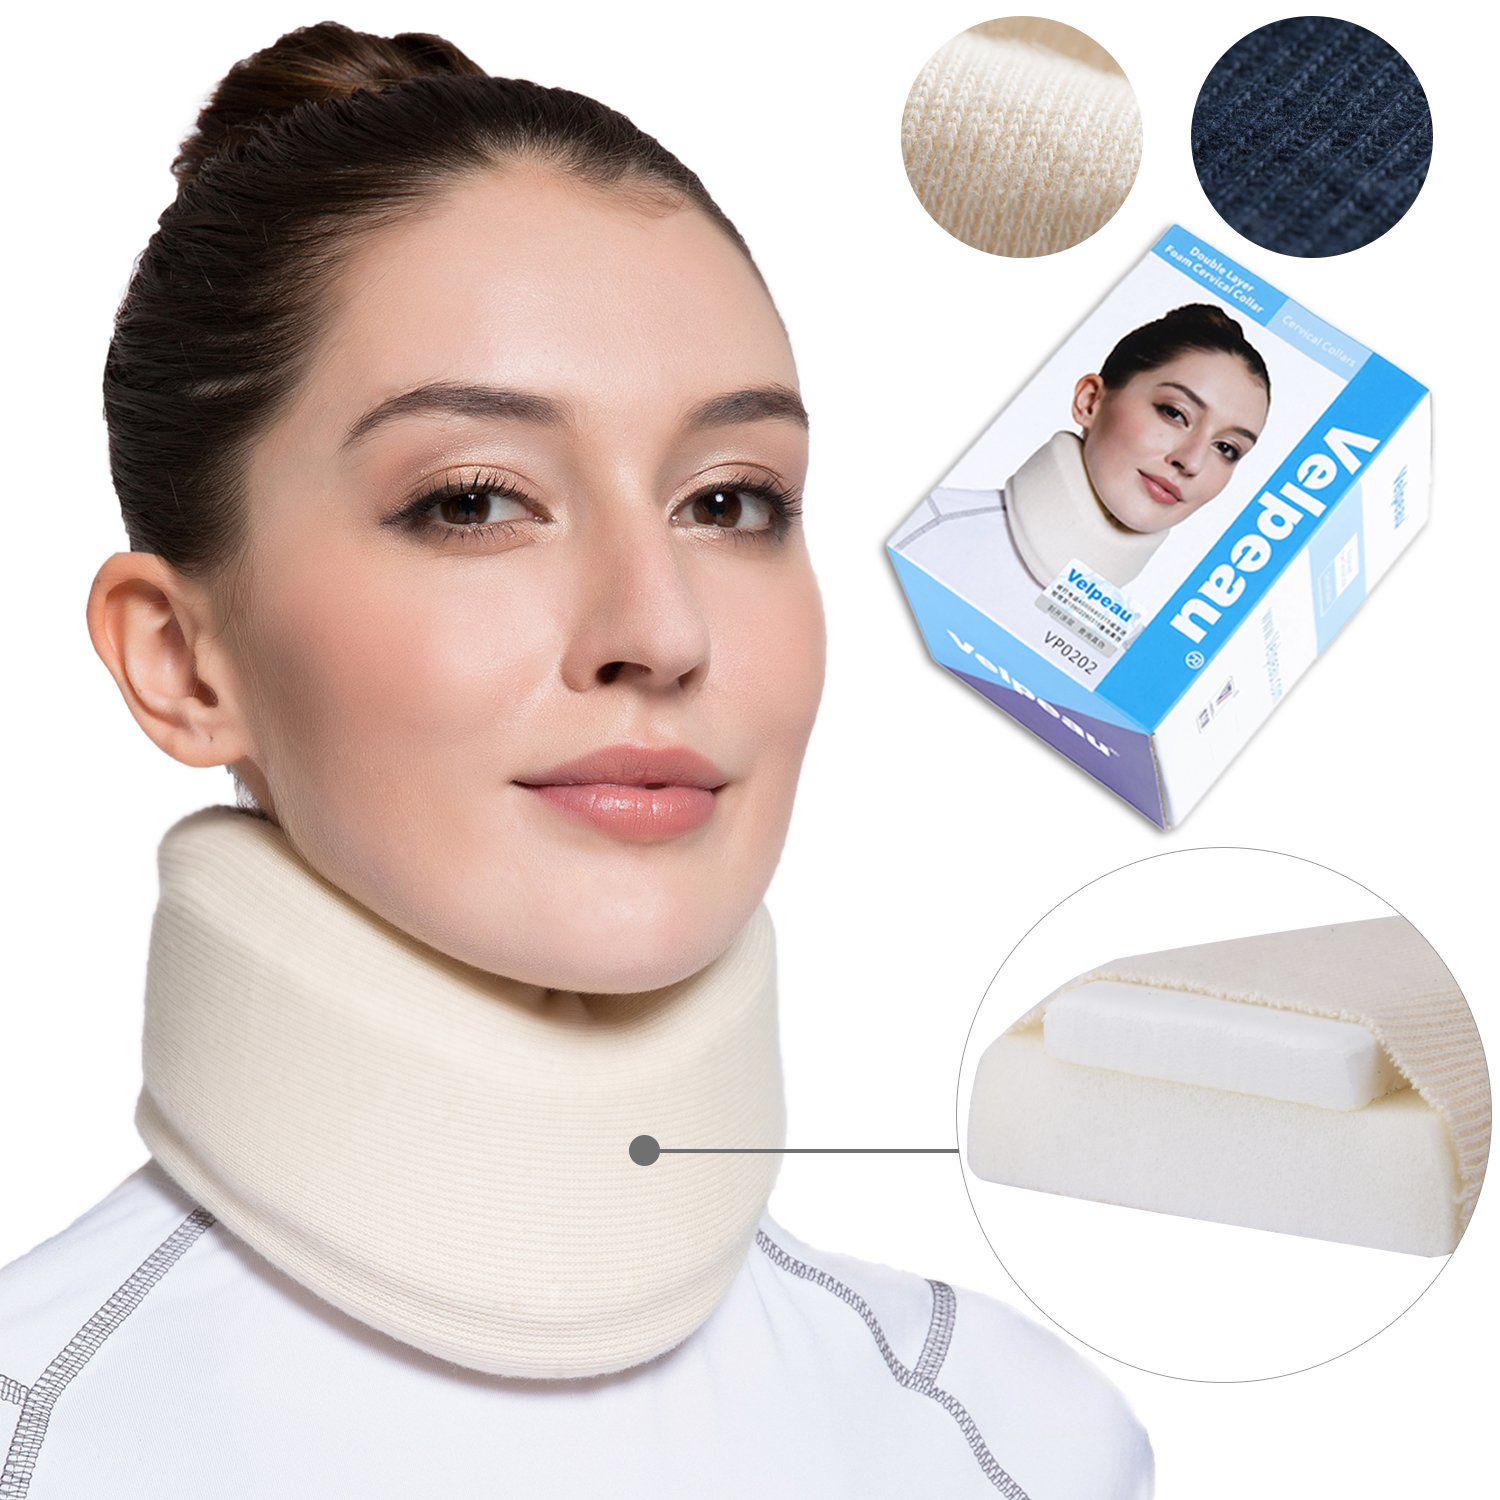 Neck Brace - Soft Cervical Collar - Double Layer Composite Moderate Support for Vertebrae for Neck Pain - Can Be Used During Sleeping, Travel, Airplane, Working (Milk-White, Medium)